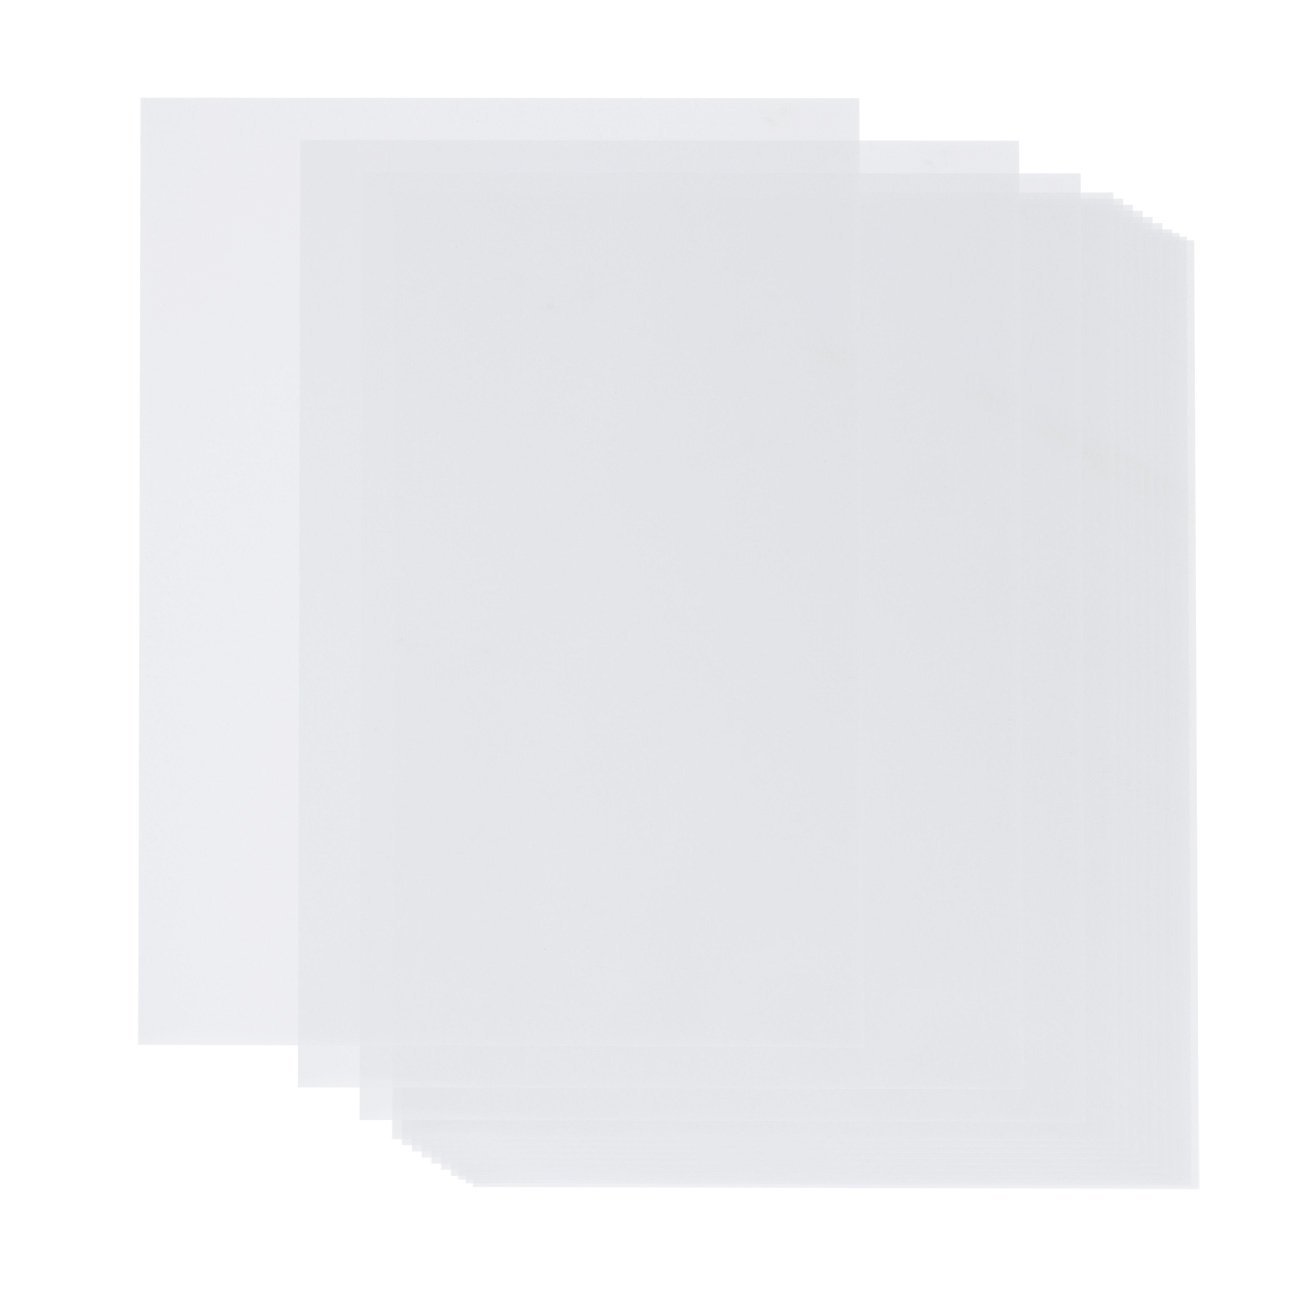 100 Sheets Pack Vellum Paper Value Pack - White Translucent Sketching and Tracing Paper - 8.5 x 11 Inches - Traditional Comic Drawing Animation Paper - 100 Pieces Juvale 4336940471